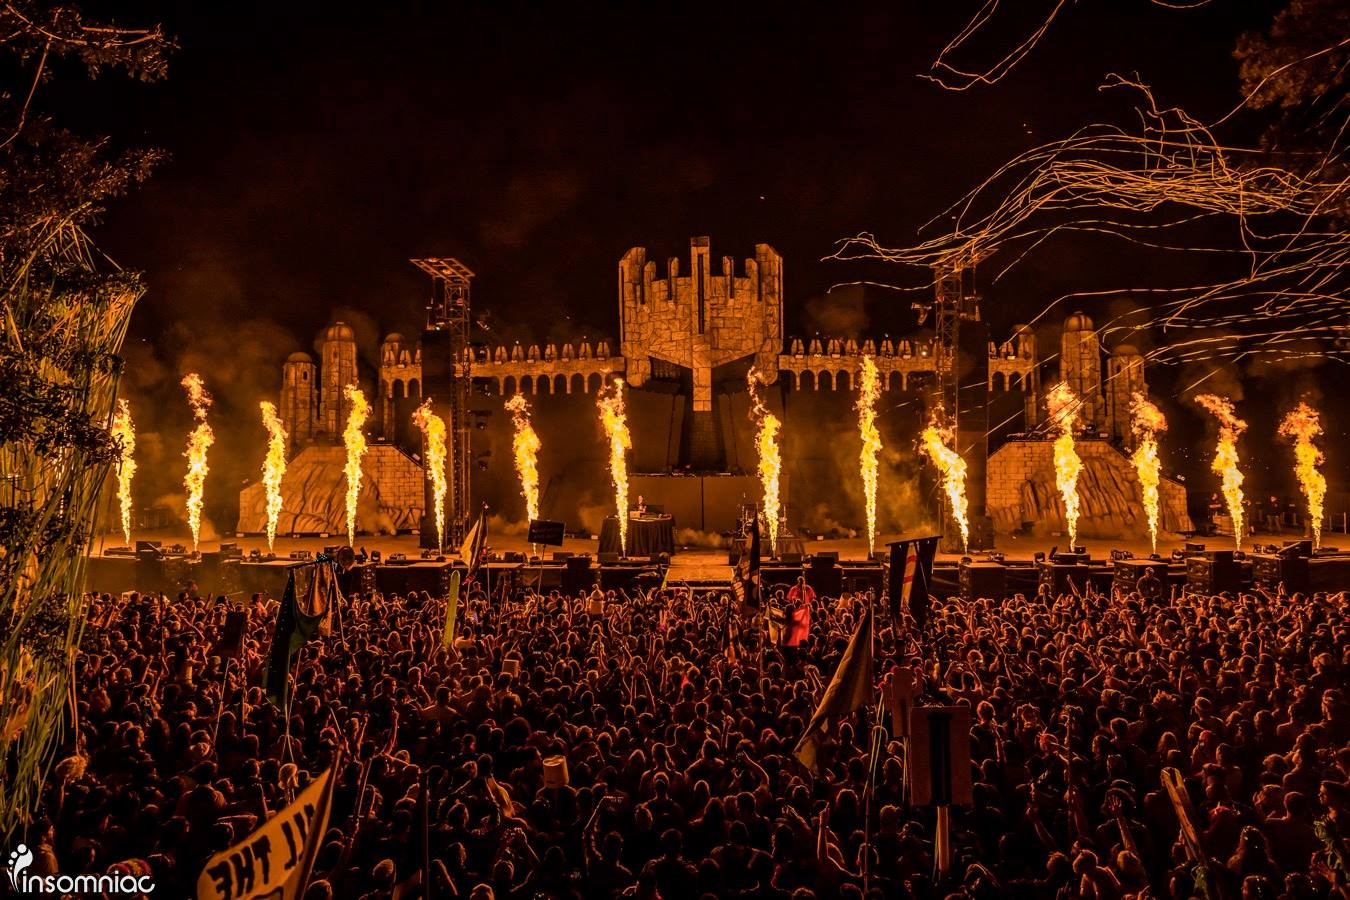 Hear Ye, Hear Ye: Middlelands 2017 Was a HUGE Success